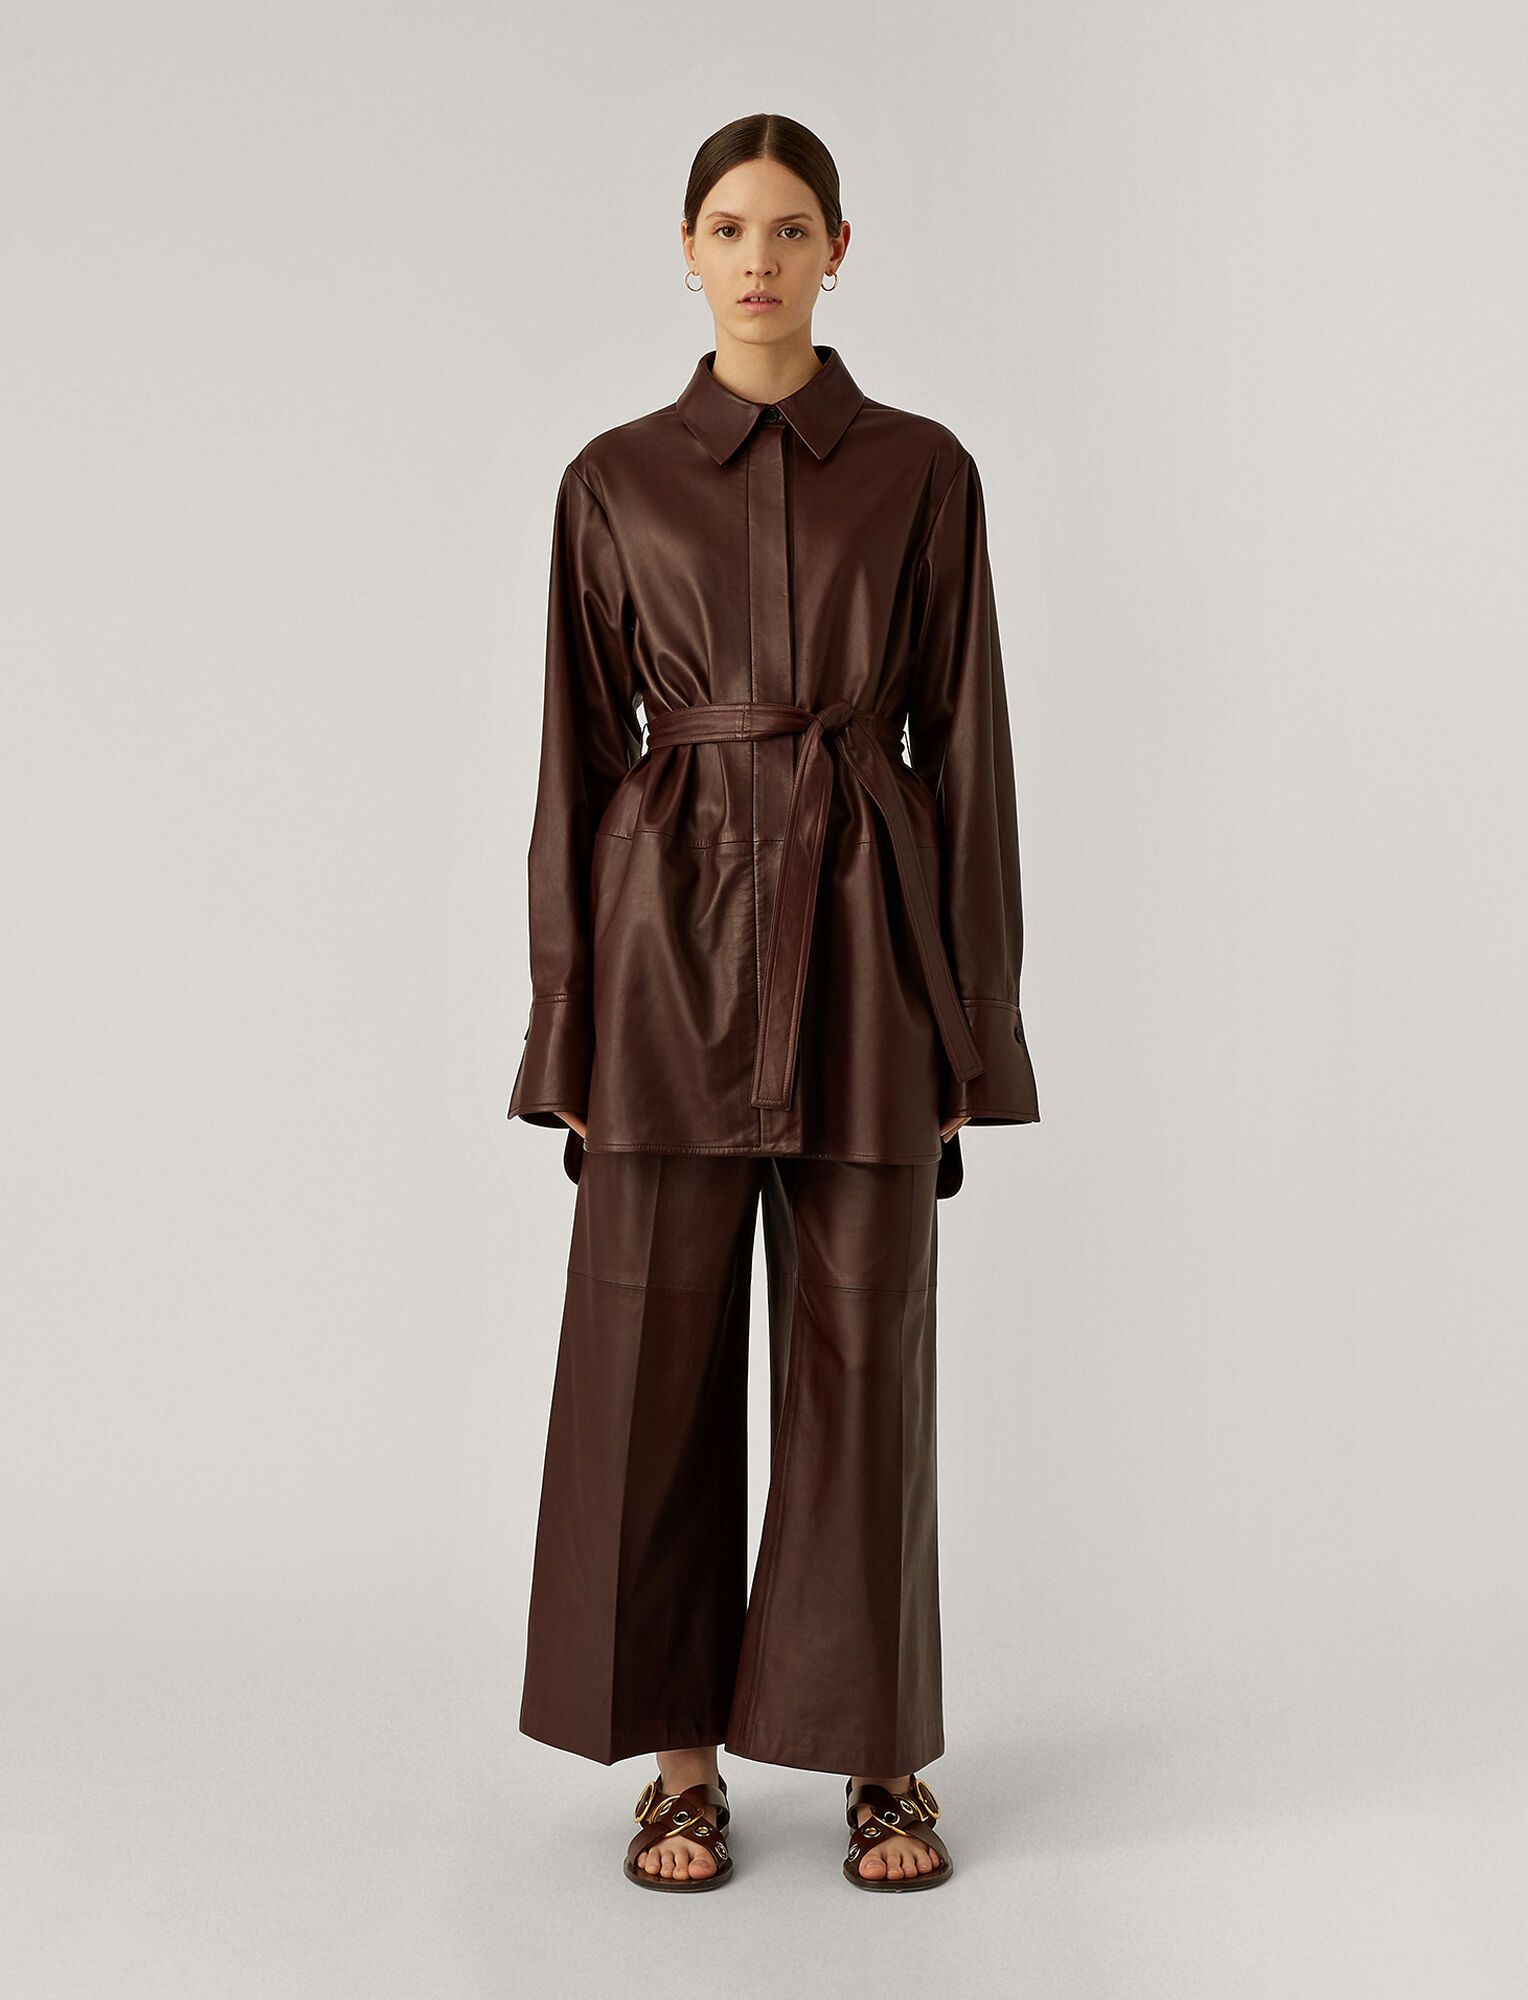 Joseph, Jason Nappa Leather Outer, in Ganache